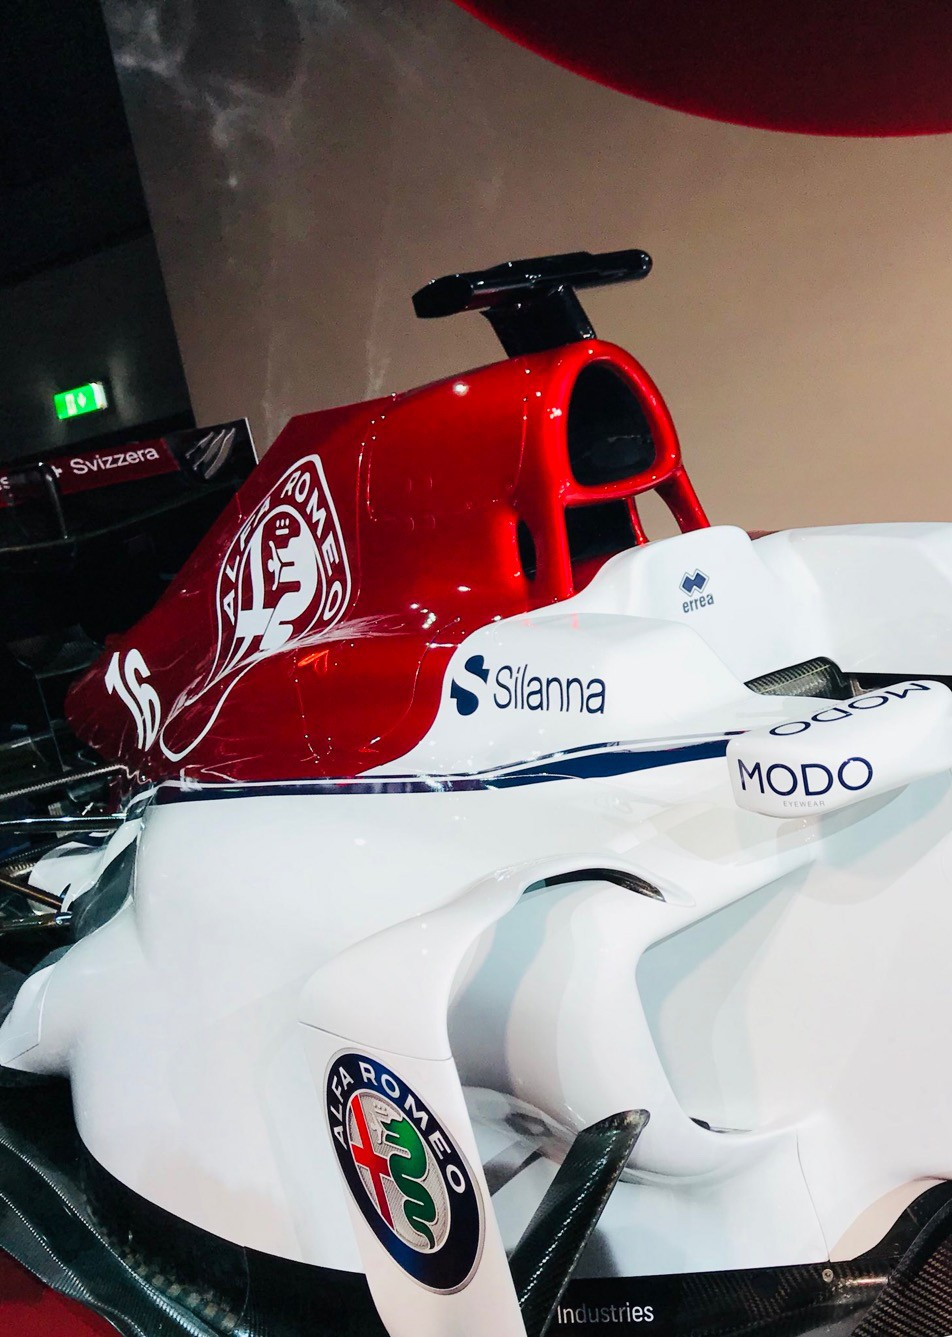 Alfa Romeo returns to Formula 1 - signing an agreement with the Sauber F1 Team!